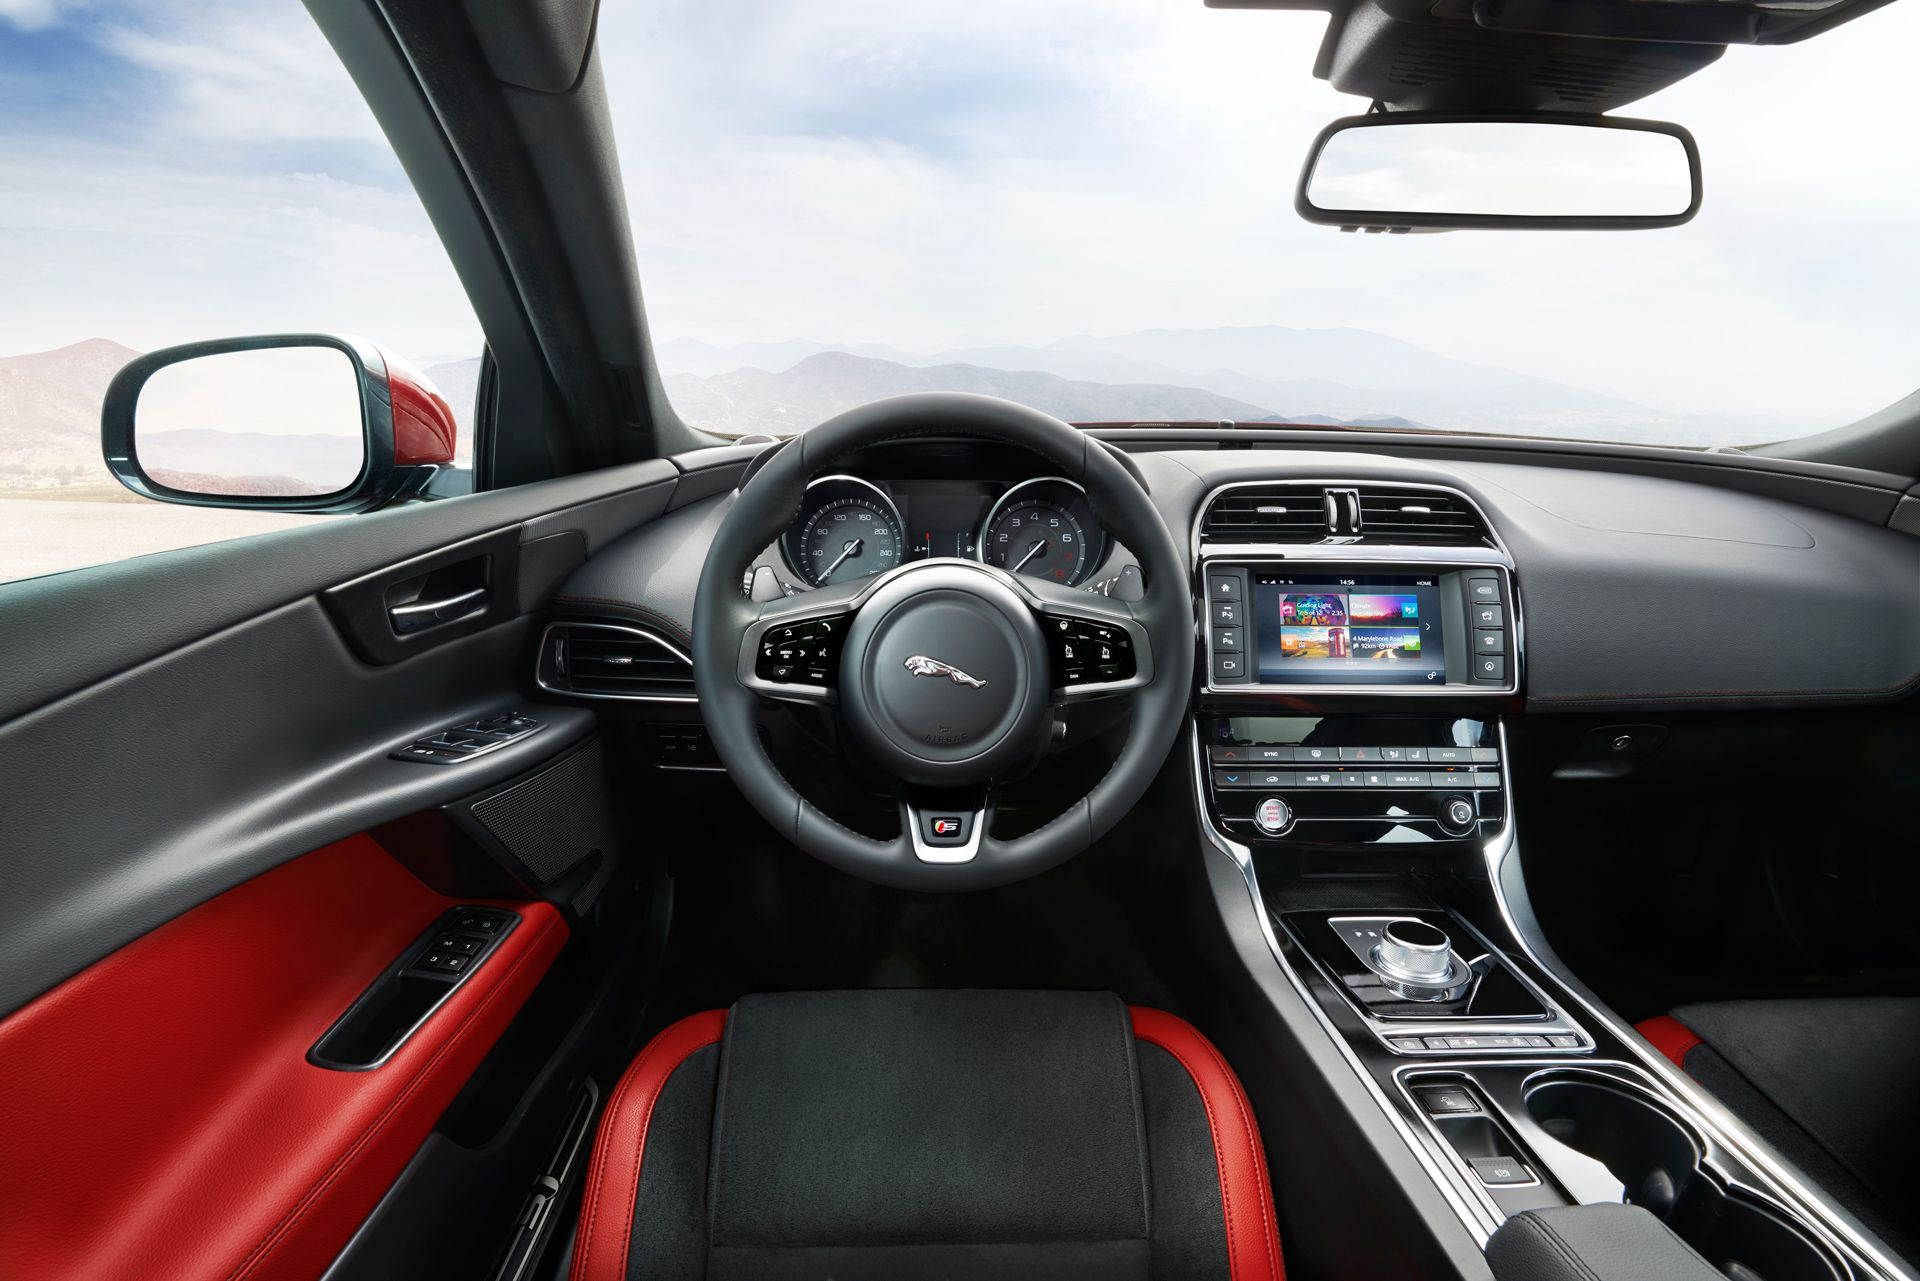 Jaguar xe int rieur jaguar pinterest images et for Interieur jaguar